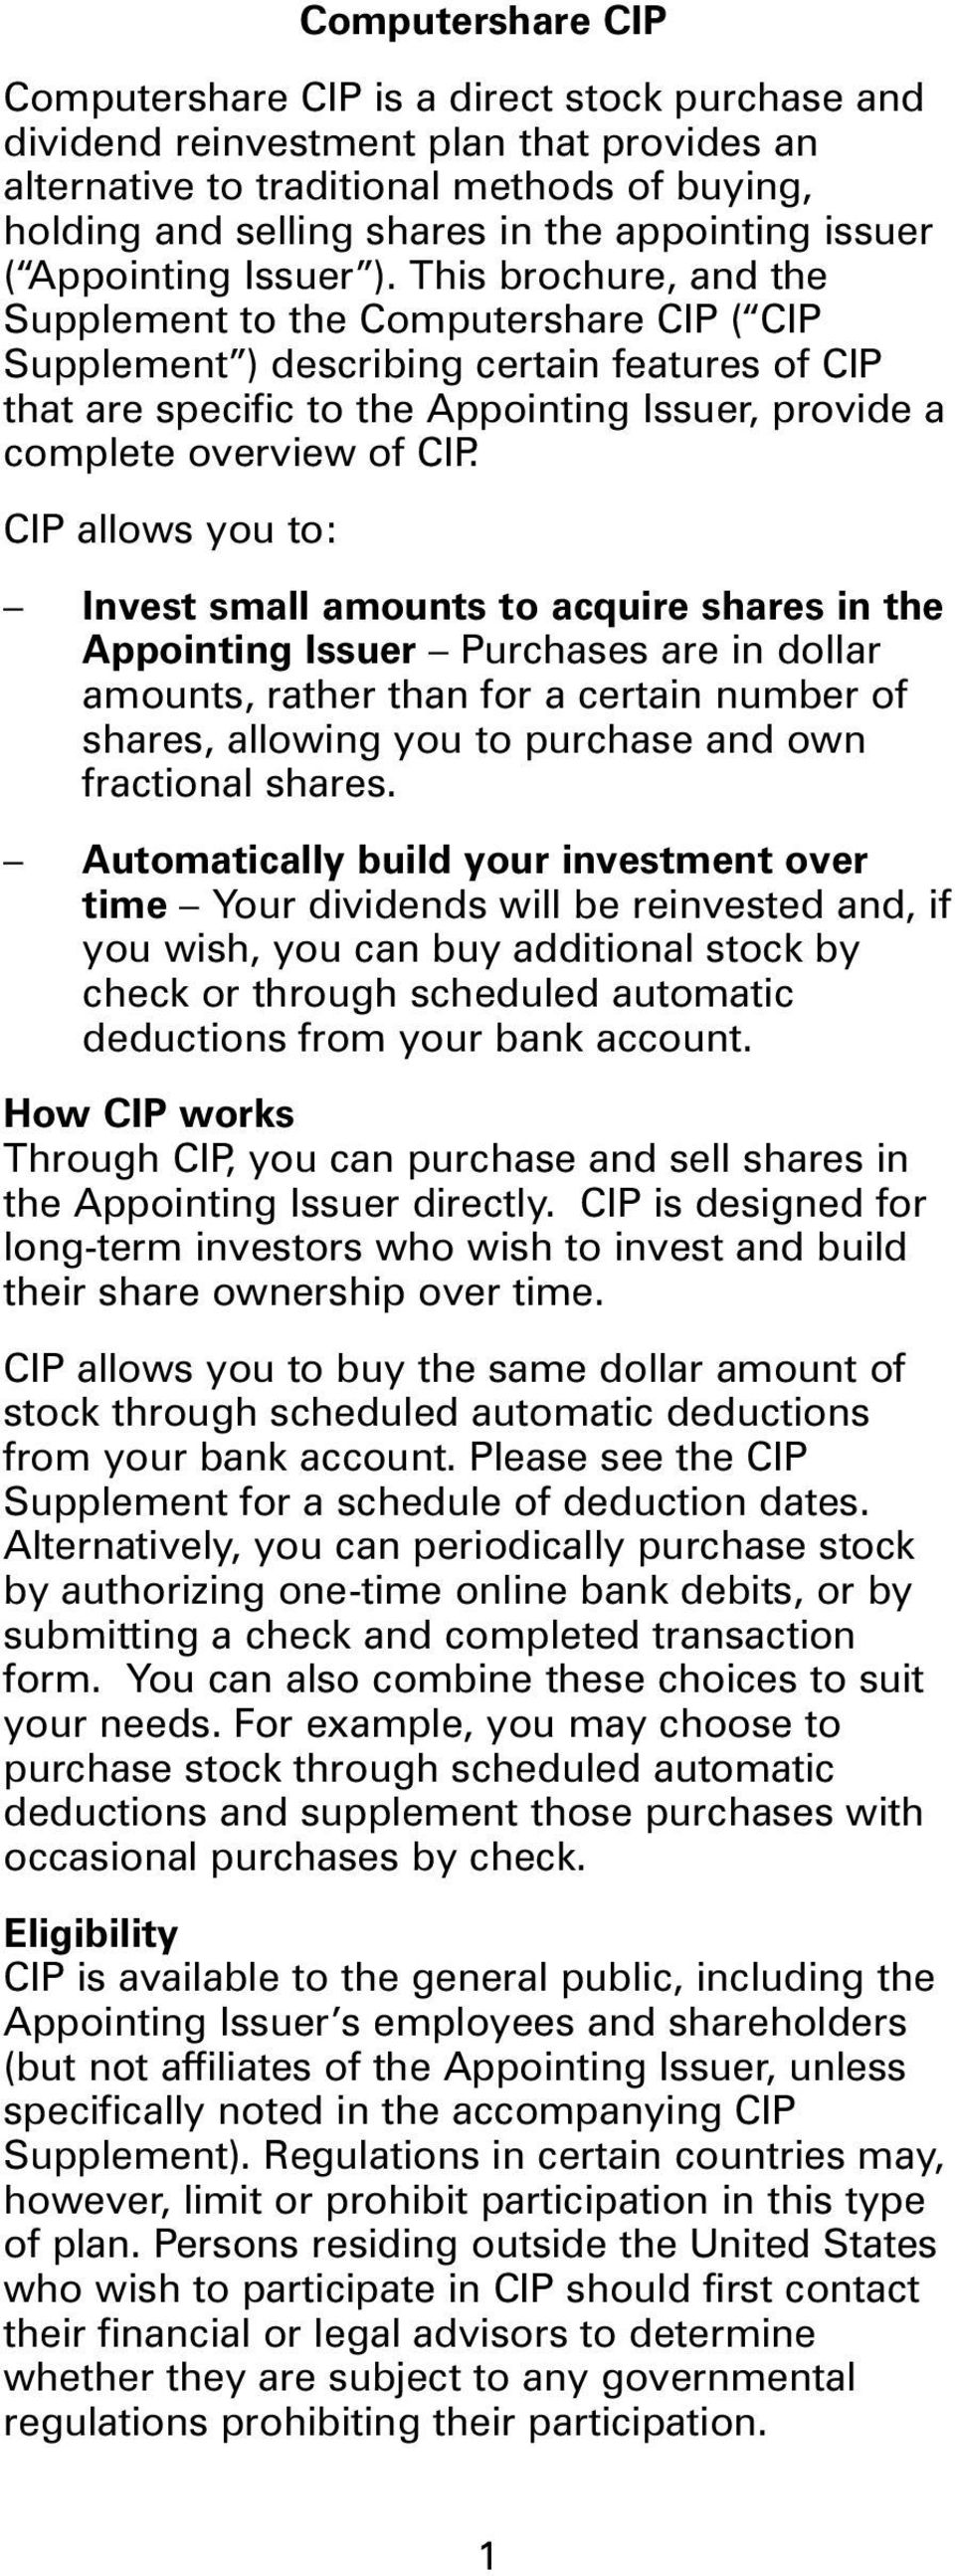 This brochure, and the Supplement to the Computershare CIP ( CIP Supplement ) describing certain features of CIP that are specific to the Appointing Issuer, provide a complete overview of CIP.